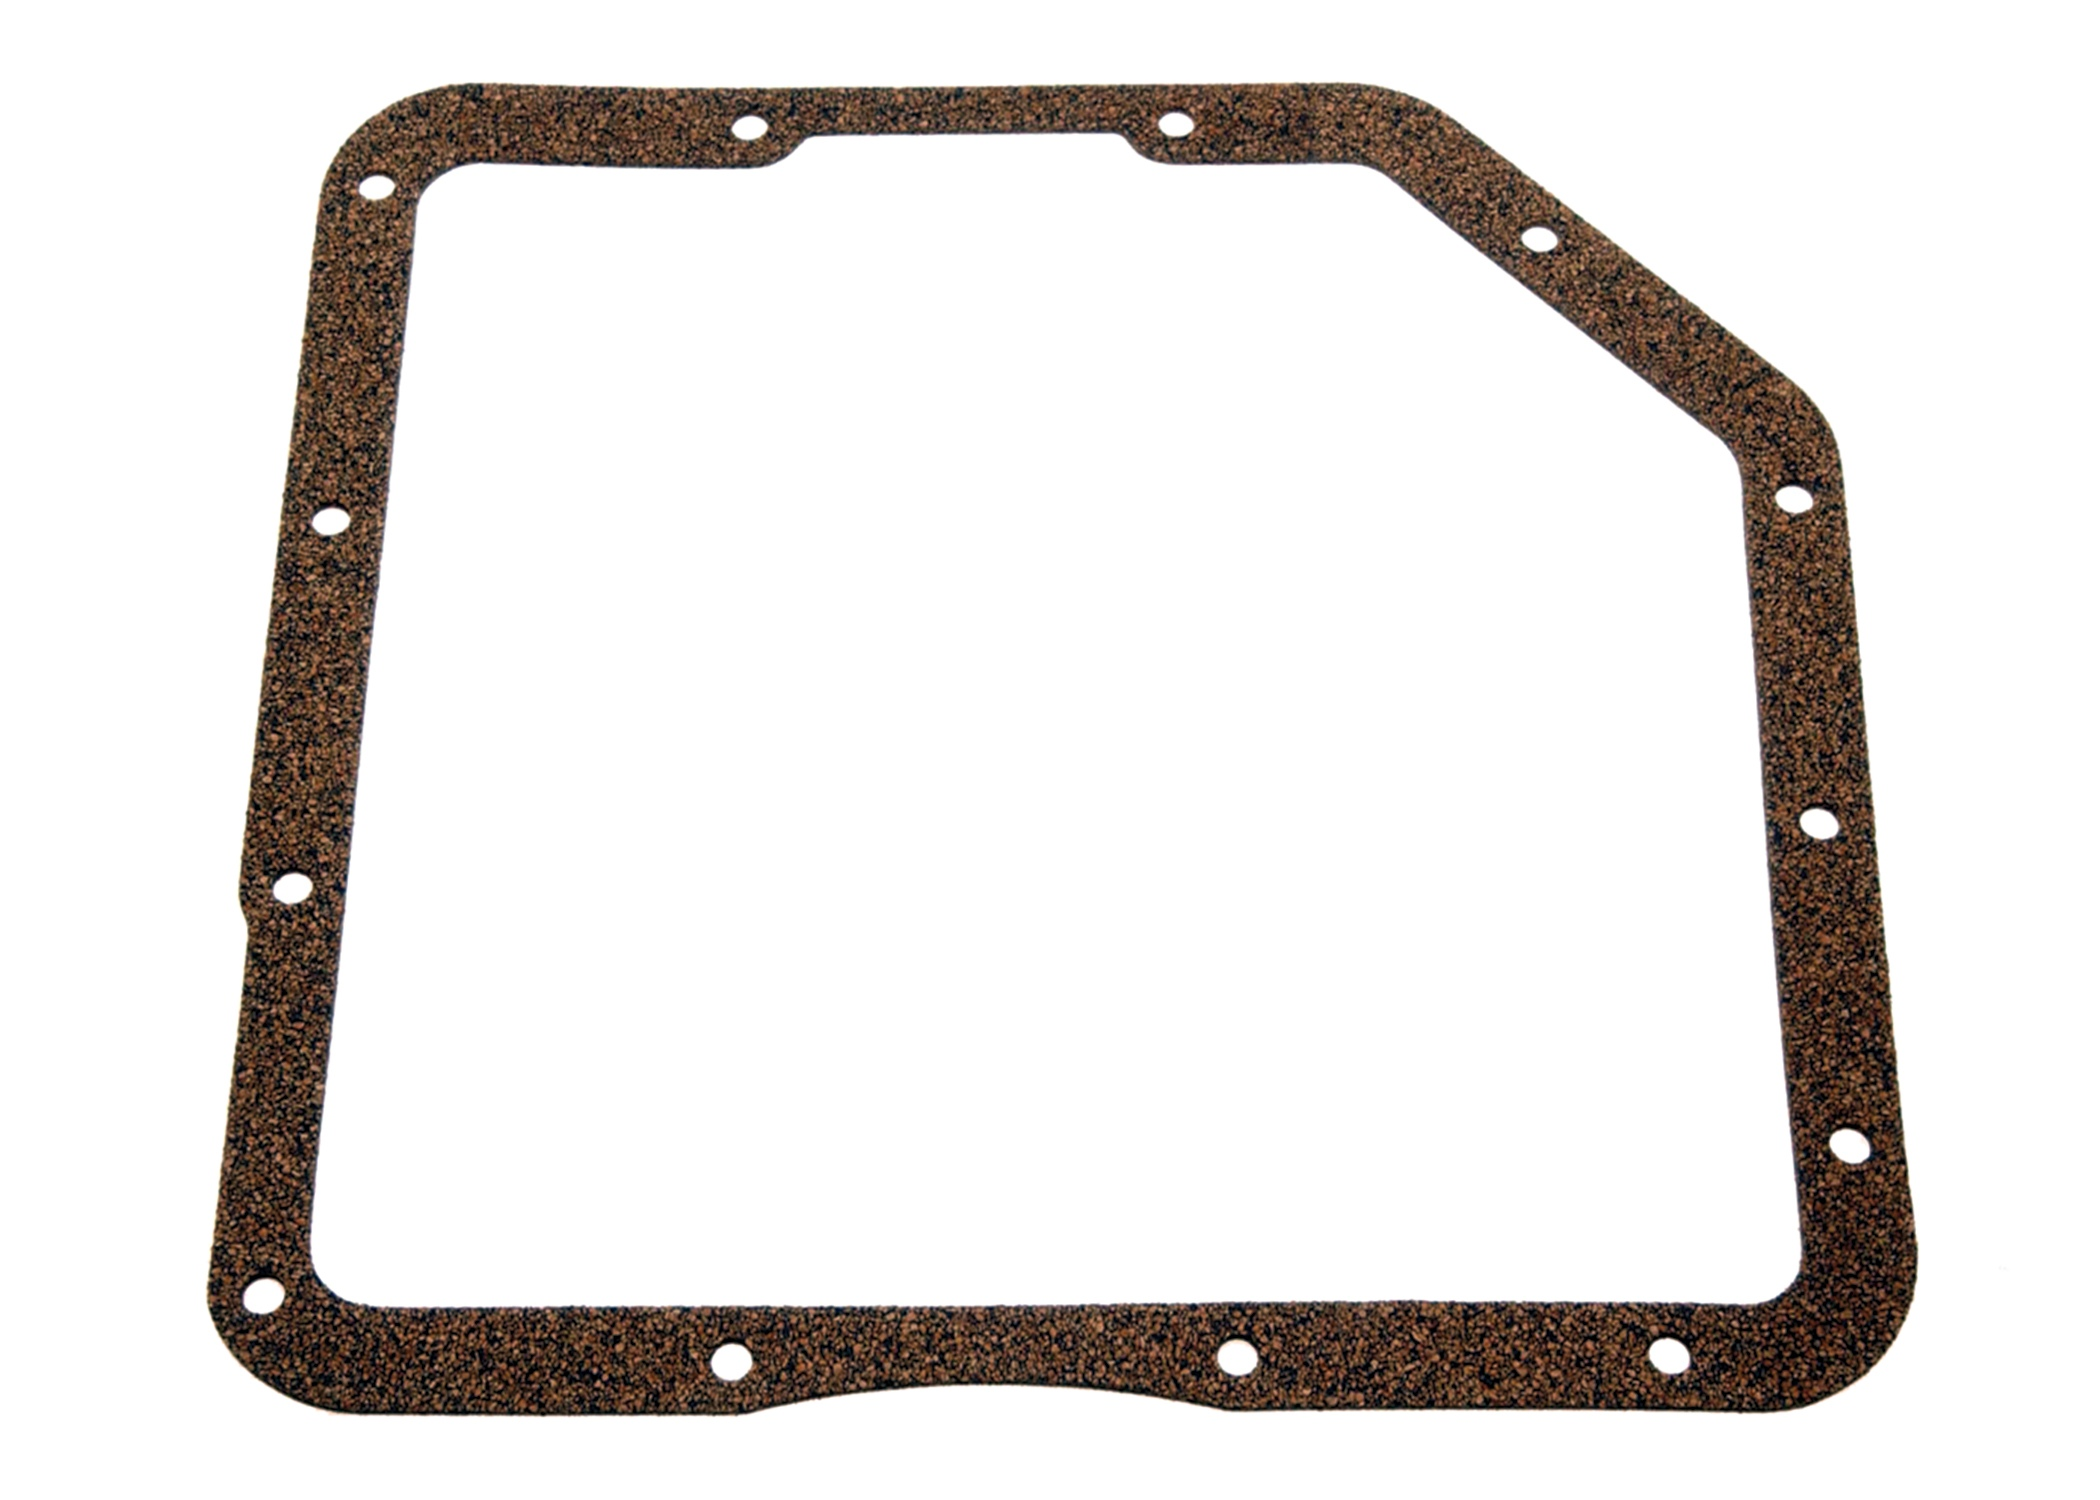 ACDELCO GM ORIGINAL EQUIPMENT - Transmission Oil Pan Gasket - DCB 25504700